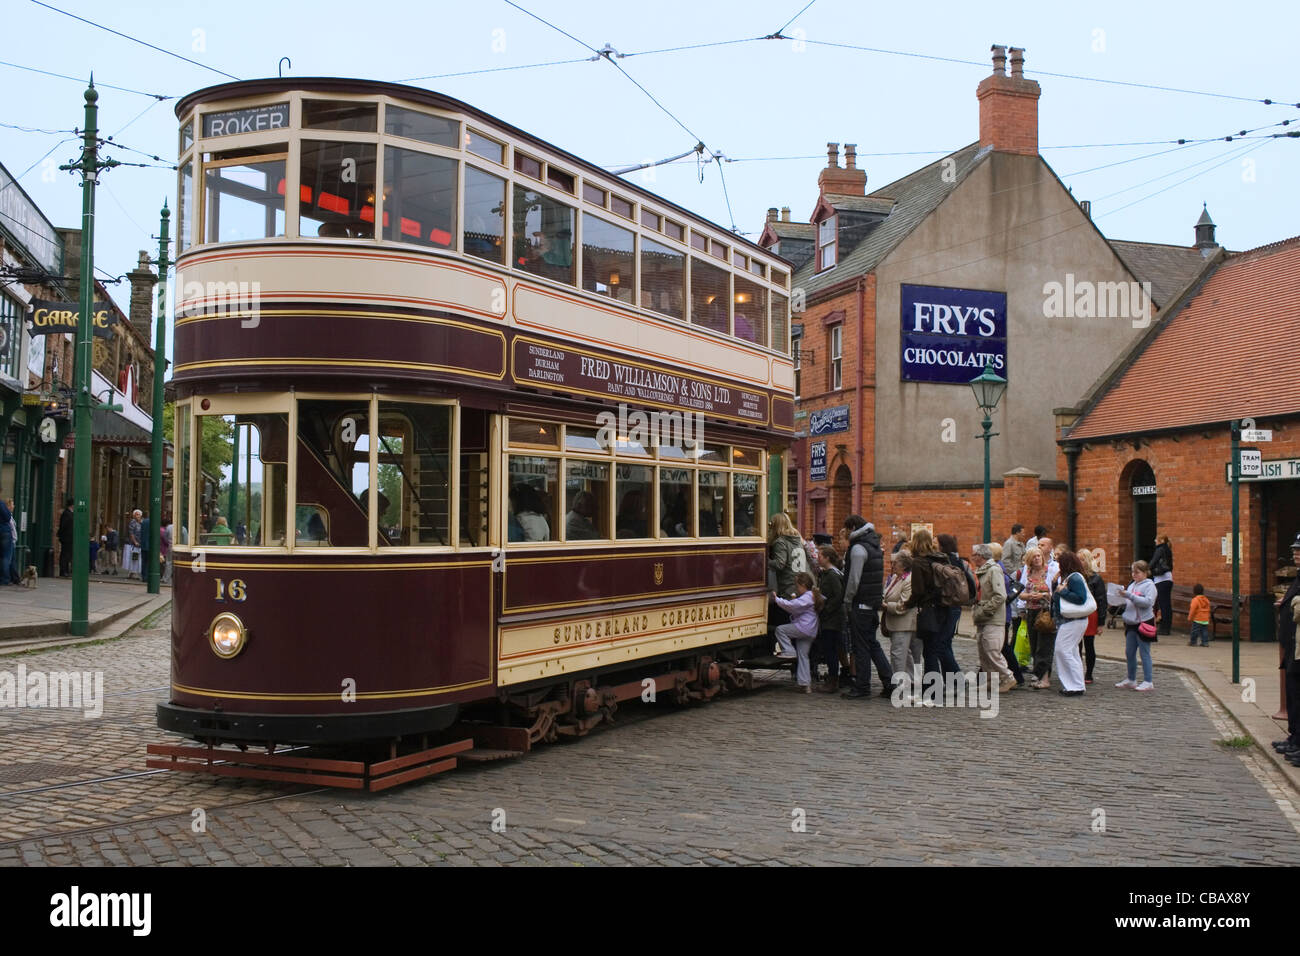 The Sunderland enclosed double-decker tram.  Beamish The North England Open Air Living Museum - Stock Image